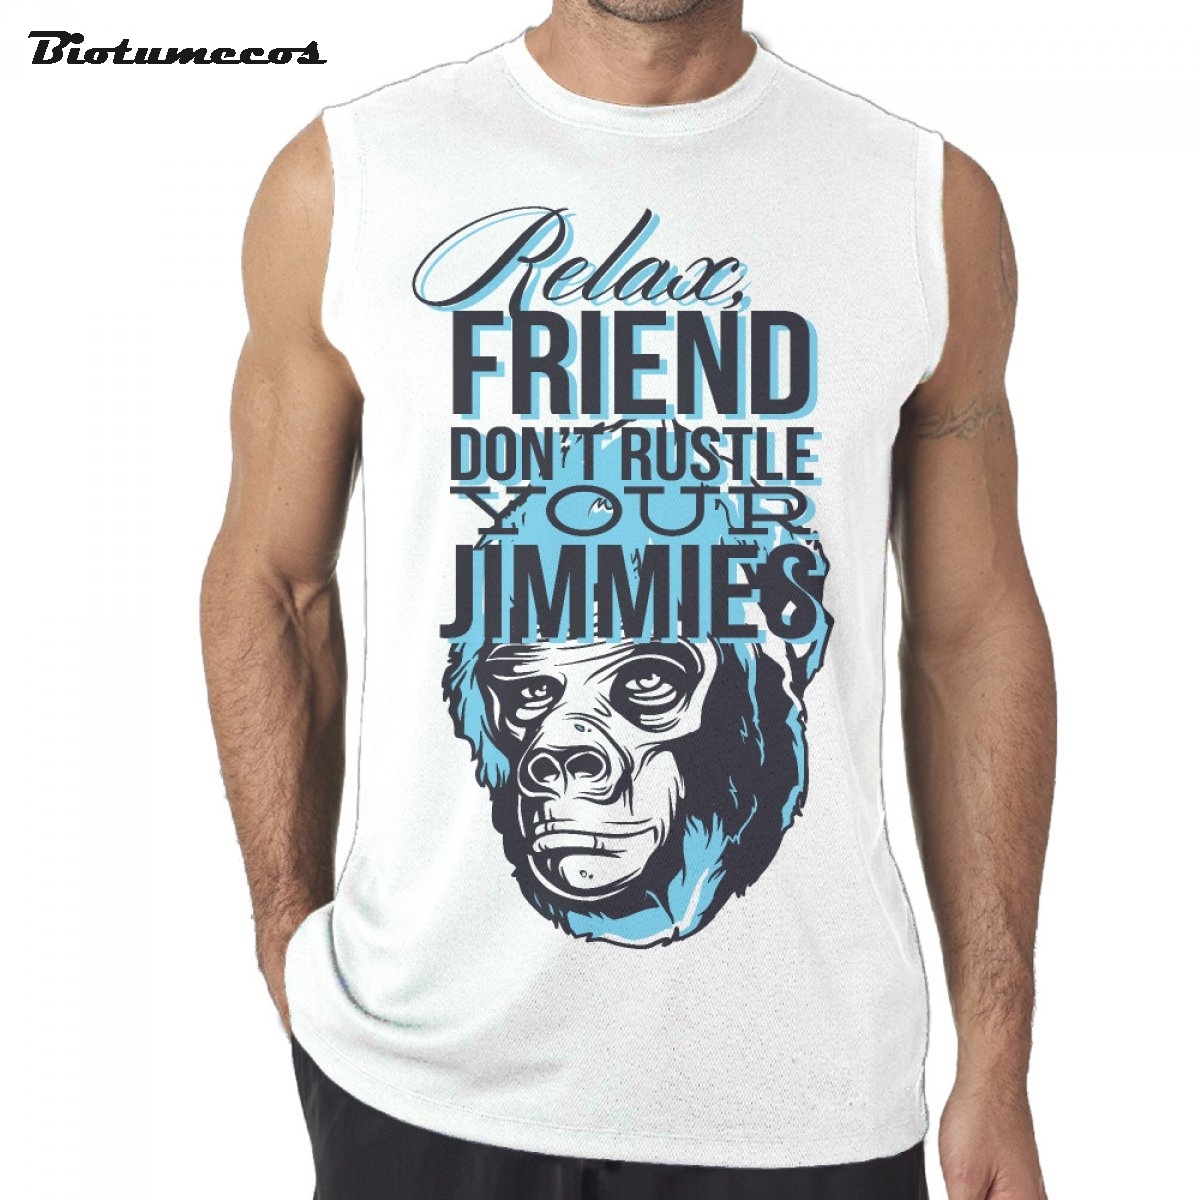 Men Tank Tops Fashion Brand Sleeveless T shirts Relax Friend Dont Rustle Your Jimmies Ape Man Printed Undershirts MWD030